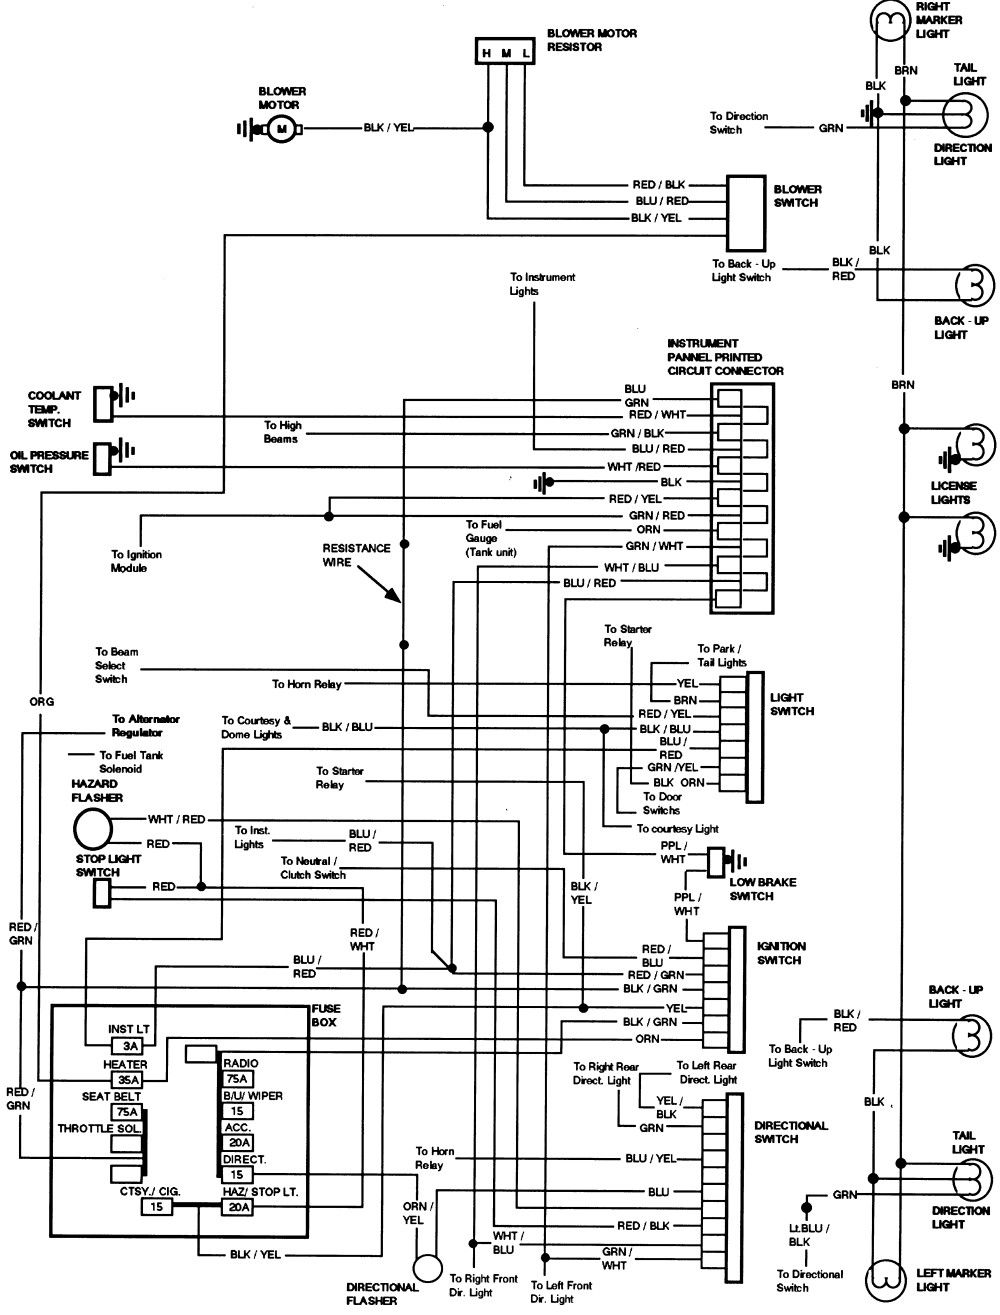 ford ignition switch wiring diagram | ford f250, ford f350 diesel, ford  www.pinterest.ph